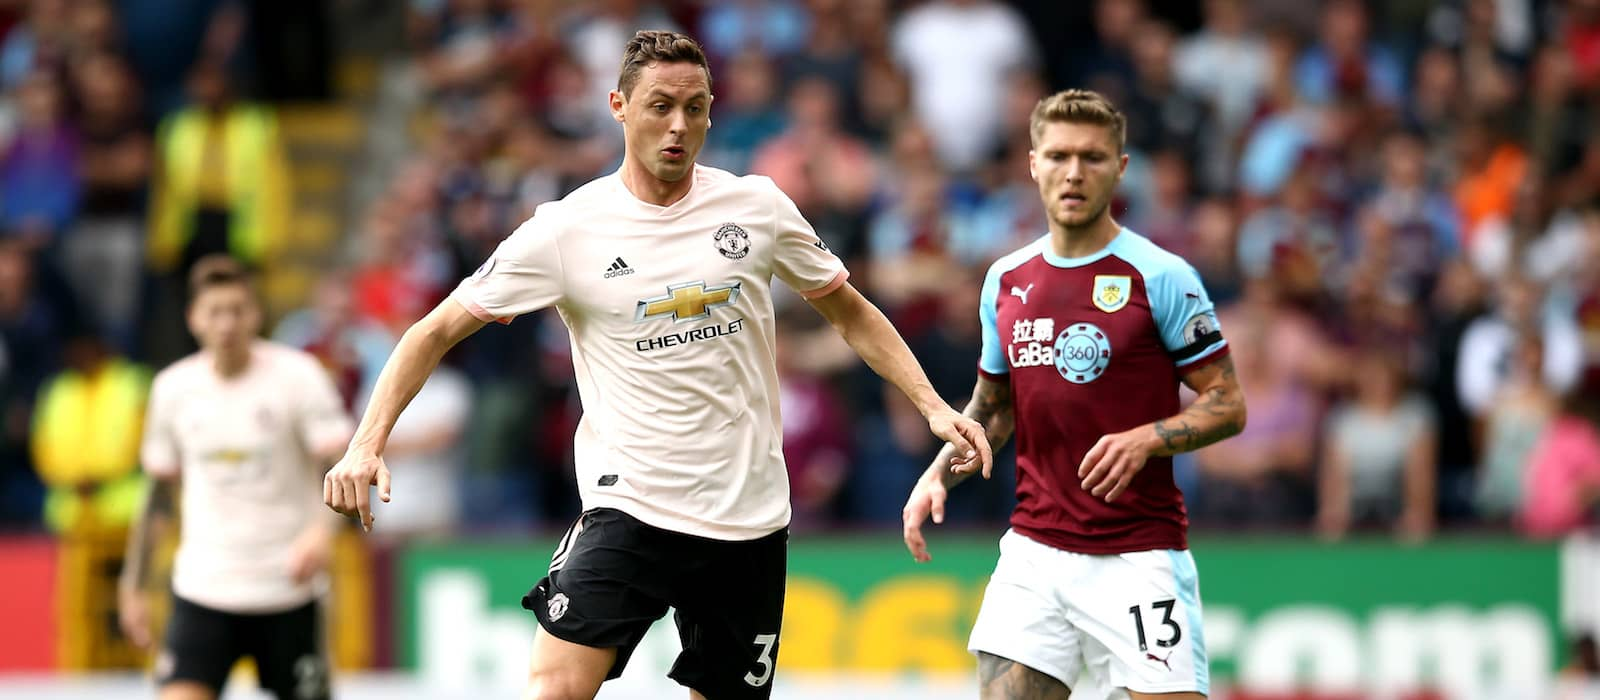 Nemanja Matic admits he was not good enough at Manchester United last season